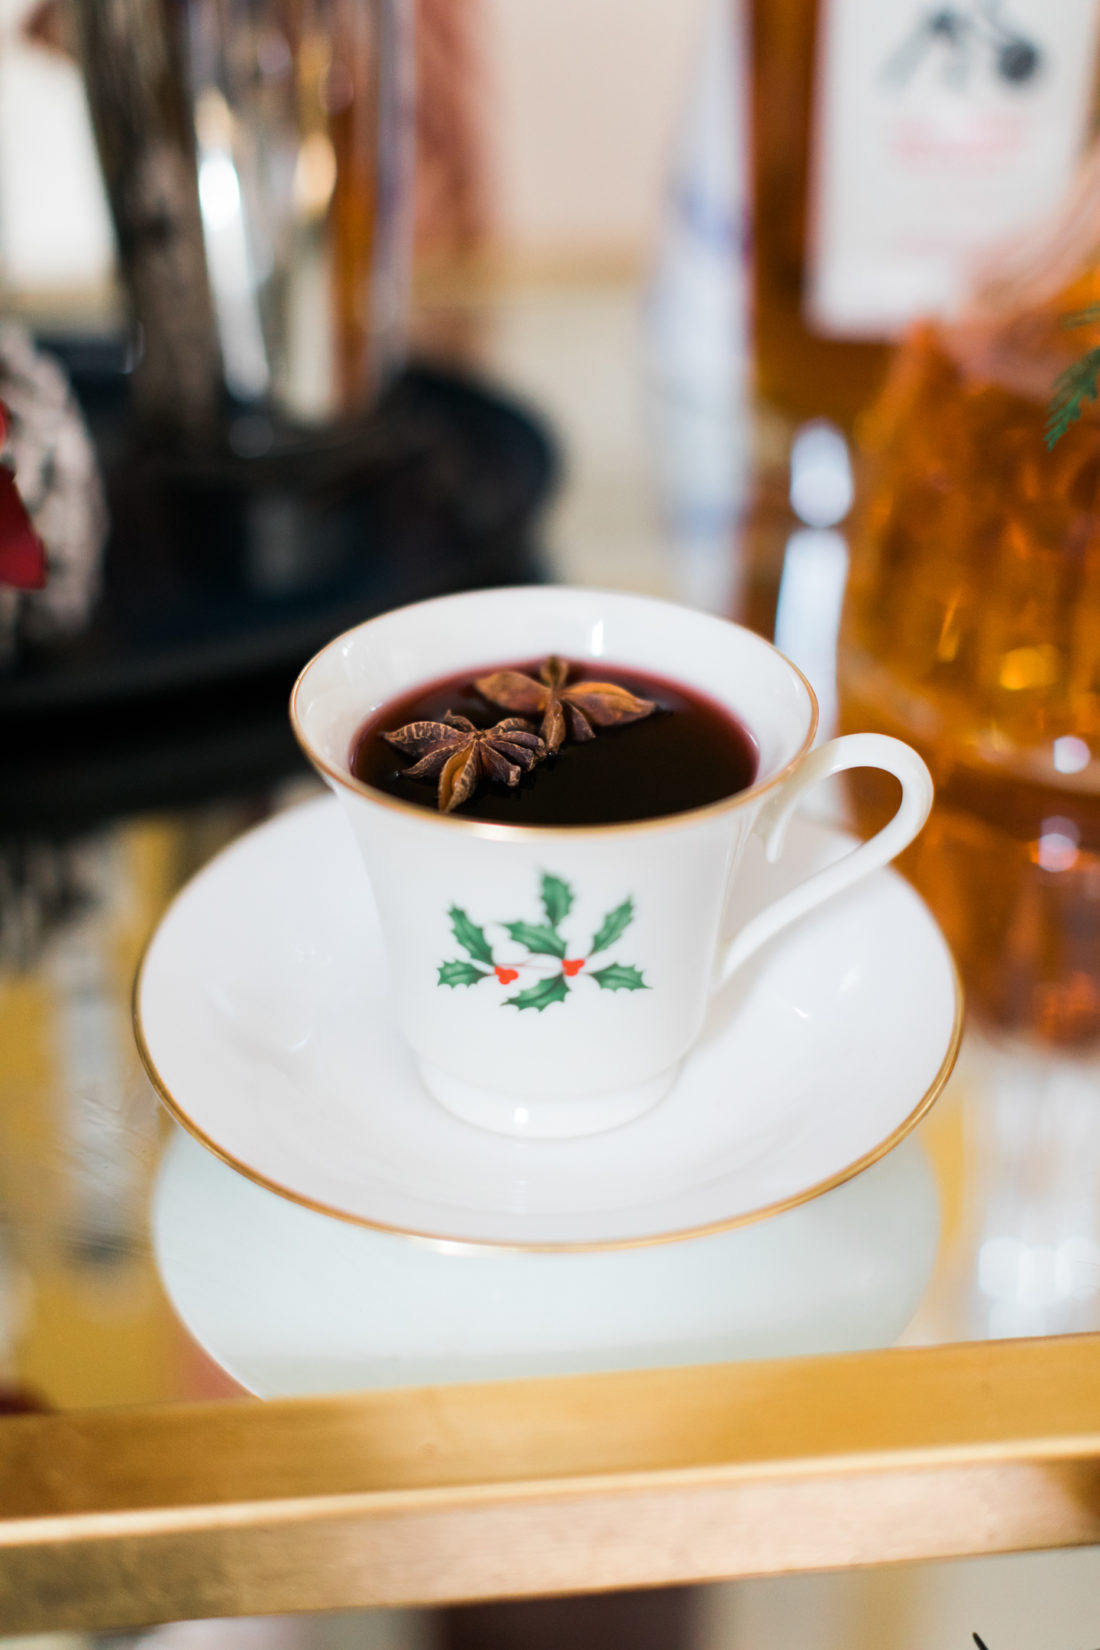 Eva Amurri Martino serves mulled wine in her grandmother's china cups as part of her classic christmas cocktail party